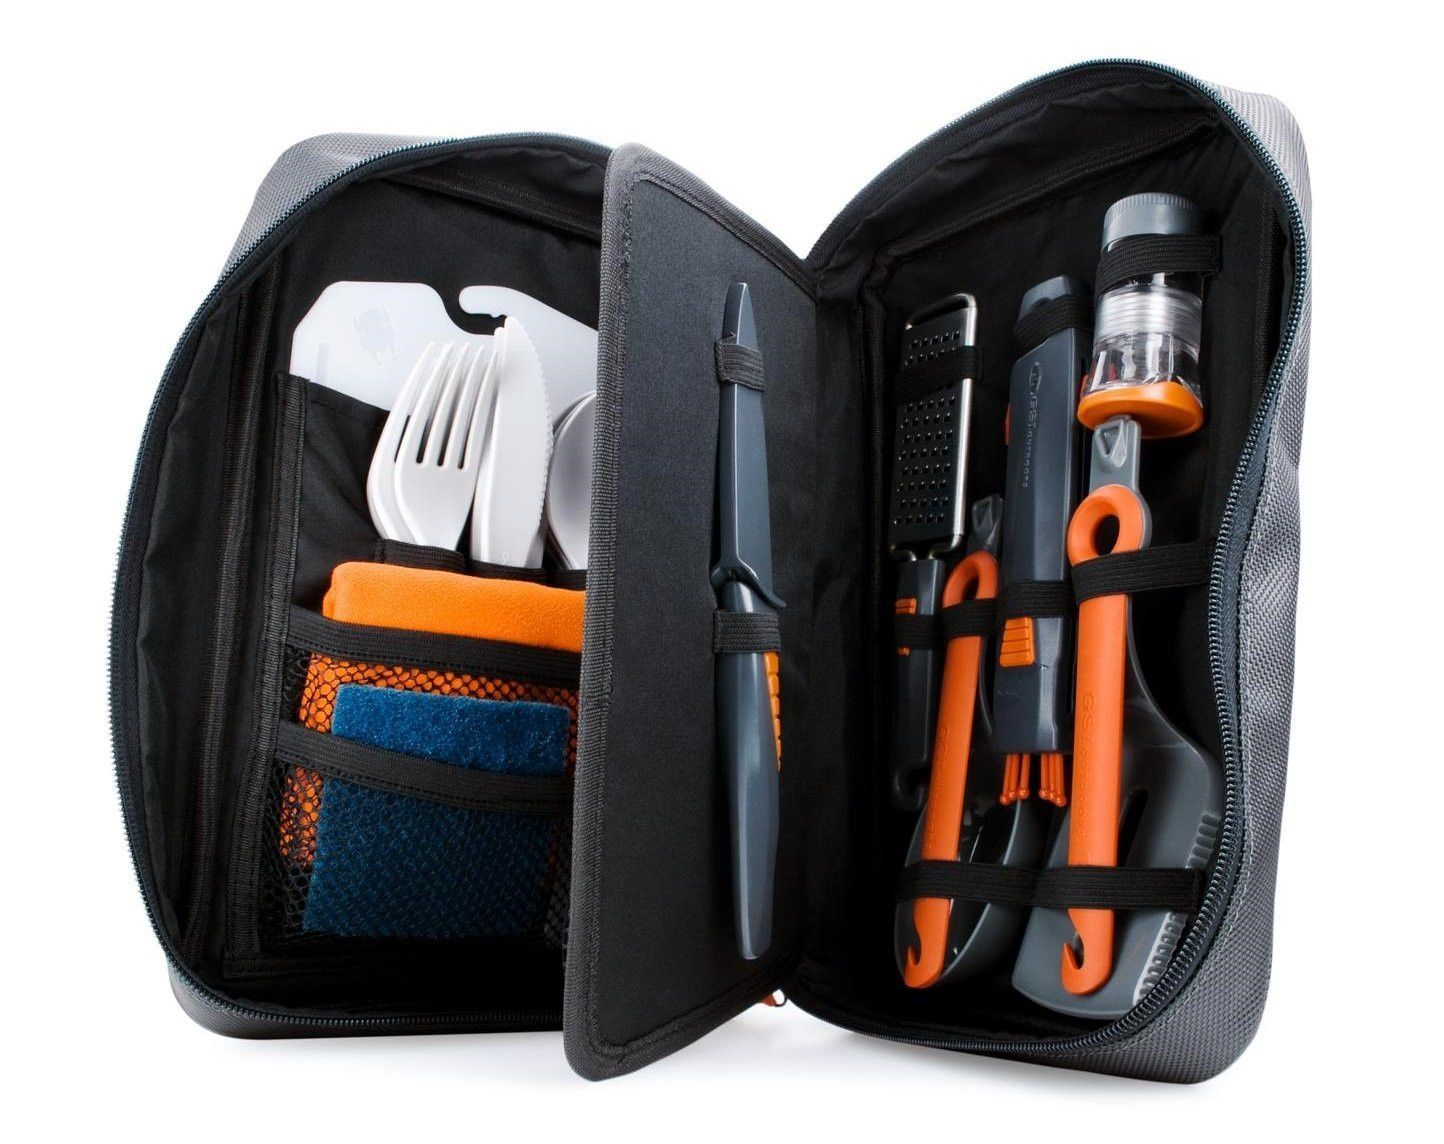 Gsi Outdoors Destination Kitchen All In One 24pc Kitchen Set Camping Hunting Backpacking Hiking Scouting Bug O Backpacking Gear Camping Essentials Camping Gear